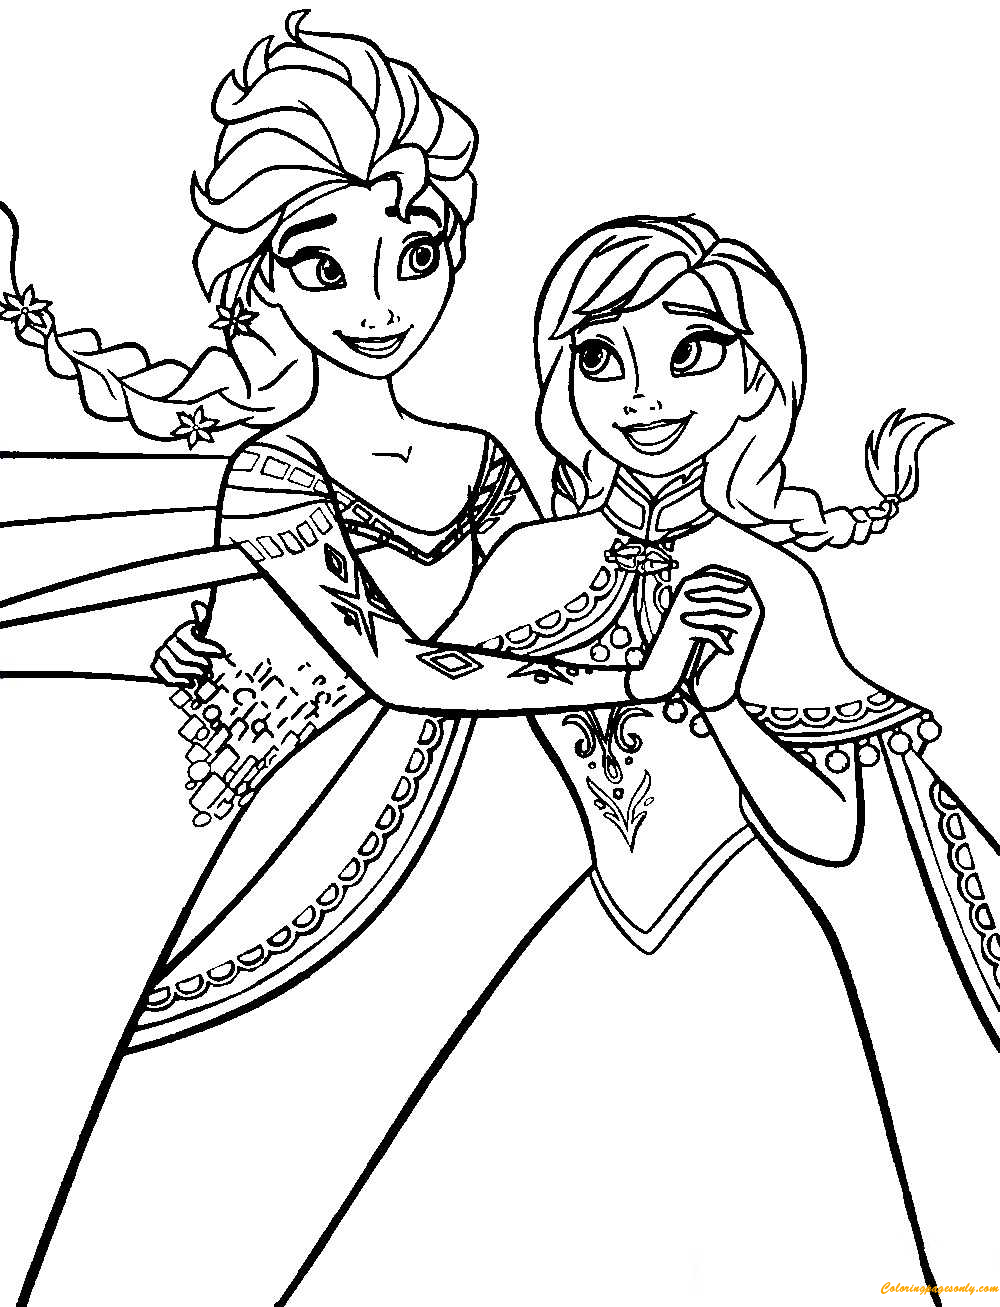 Frozen Anna And Elsa Coloring Page Free Coloring Pages Online